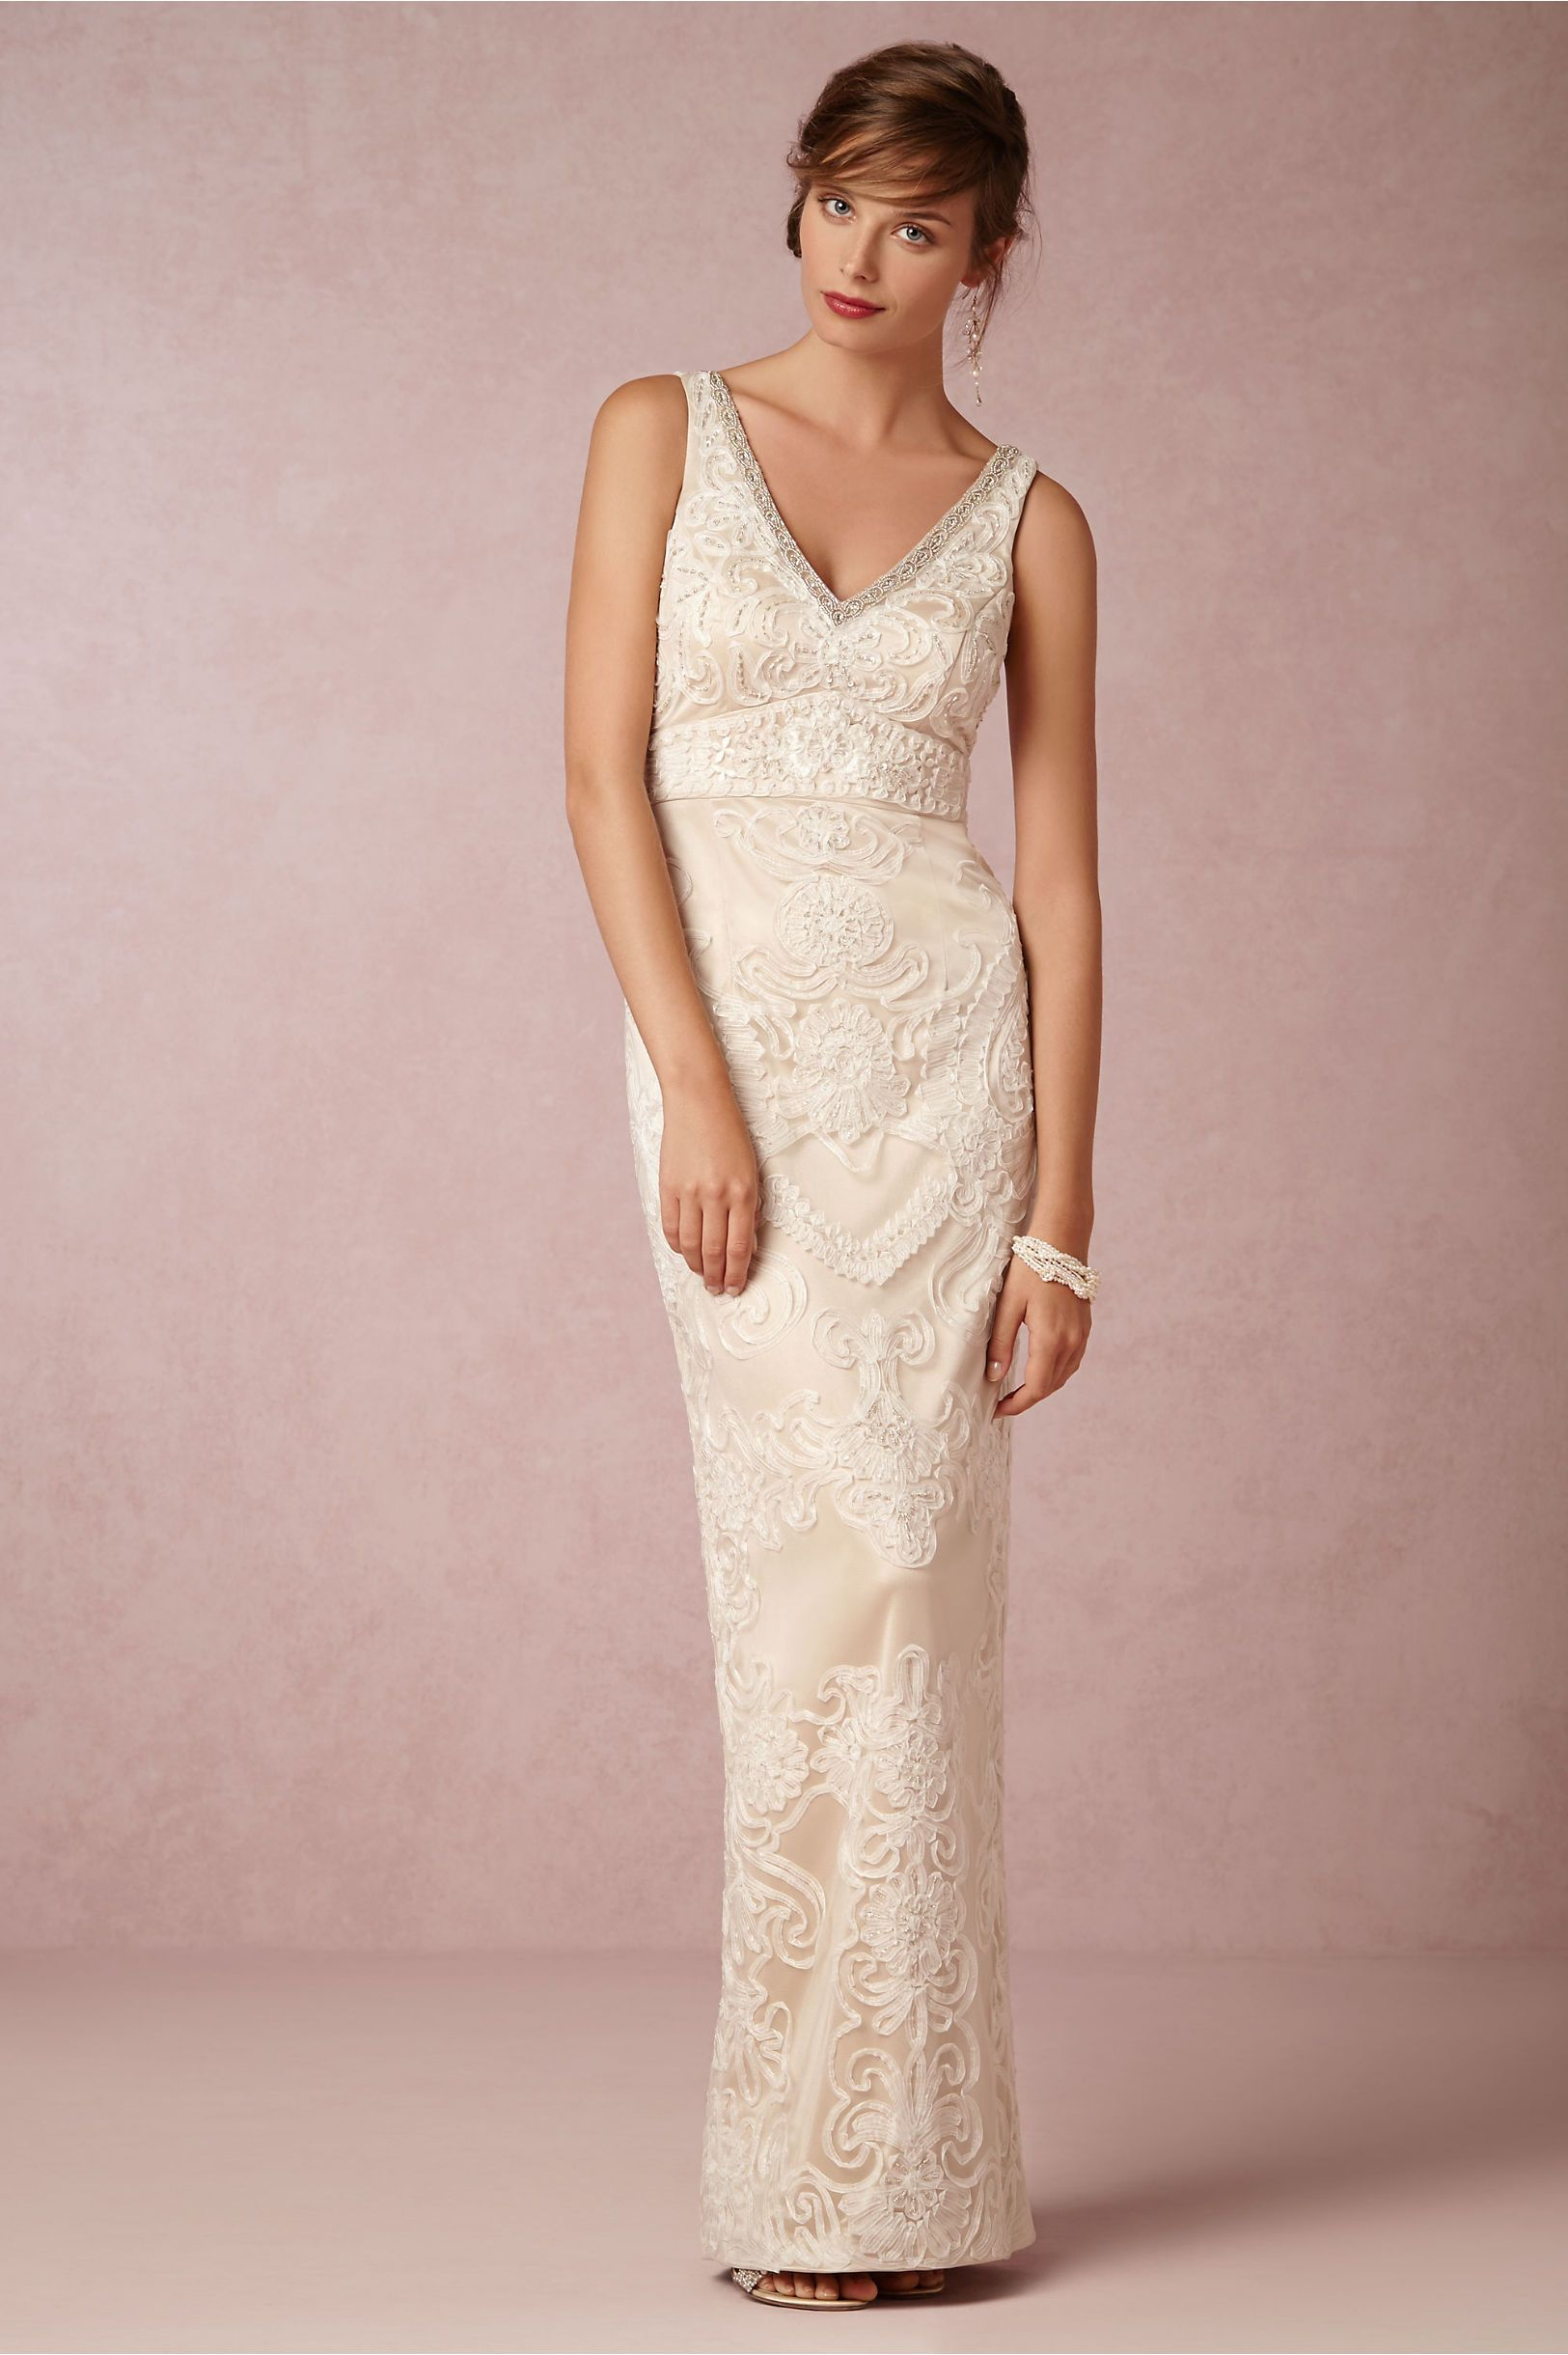 Adele gown in sale wedding dresses at bhldn is this the dress we adele gown in sale wedding dresses at bhldn is this the dress we saw at ombrellifo Image collections